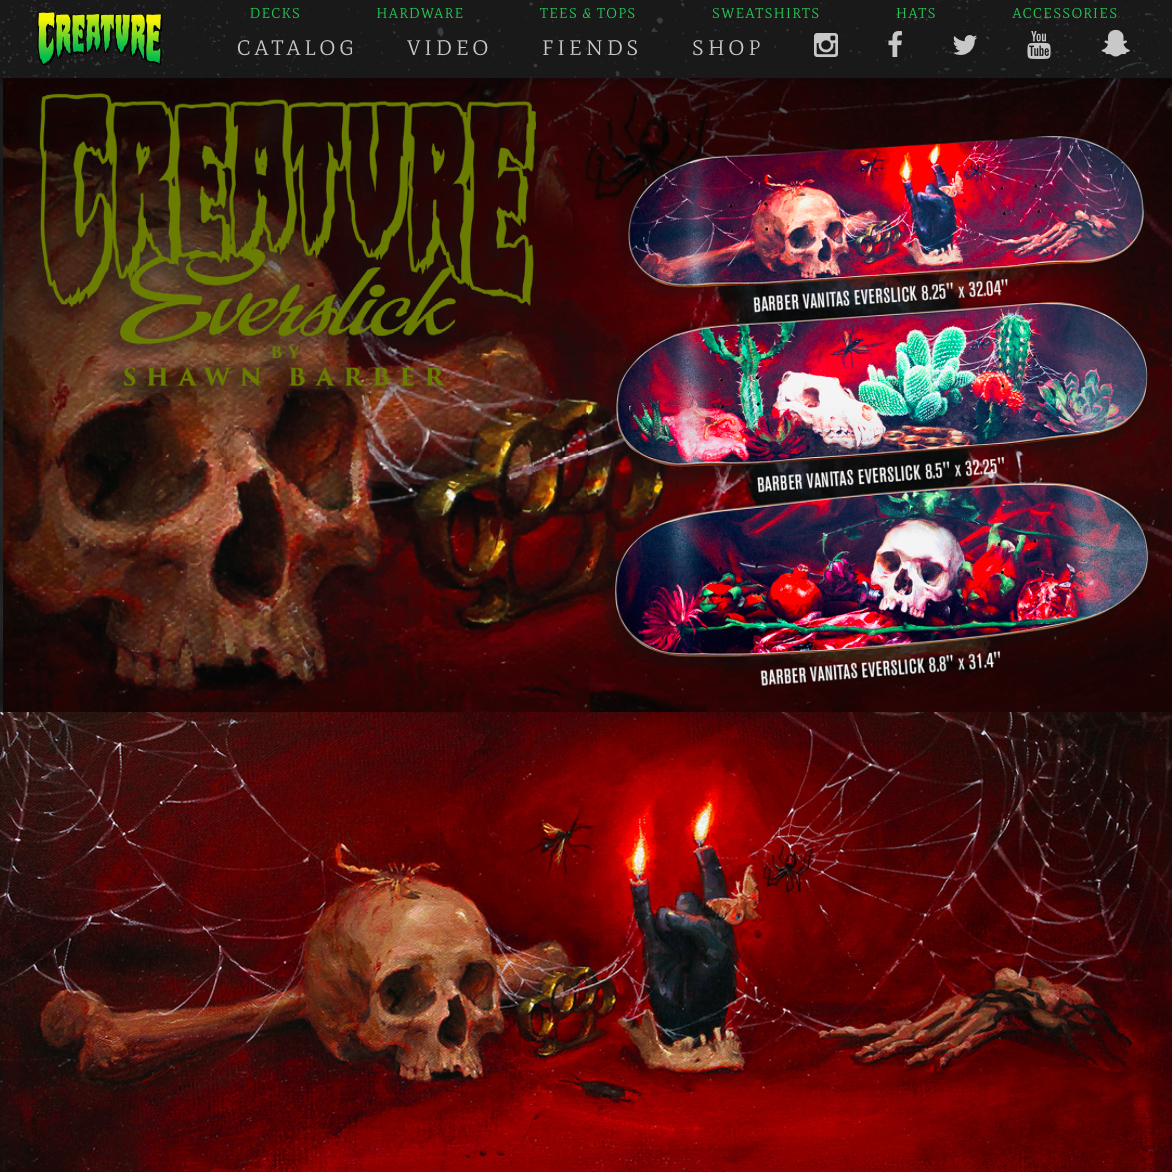 Creature Skateboards, Artist signature series, 2018